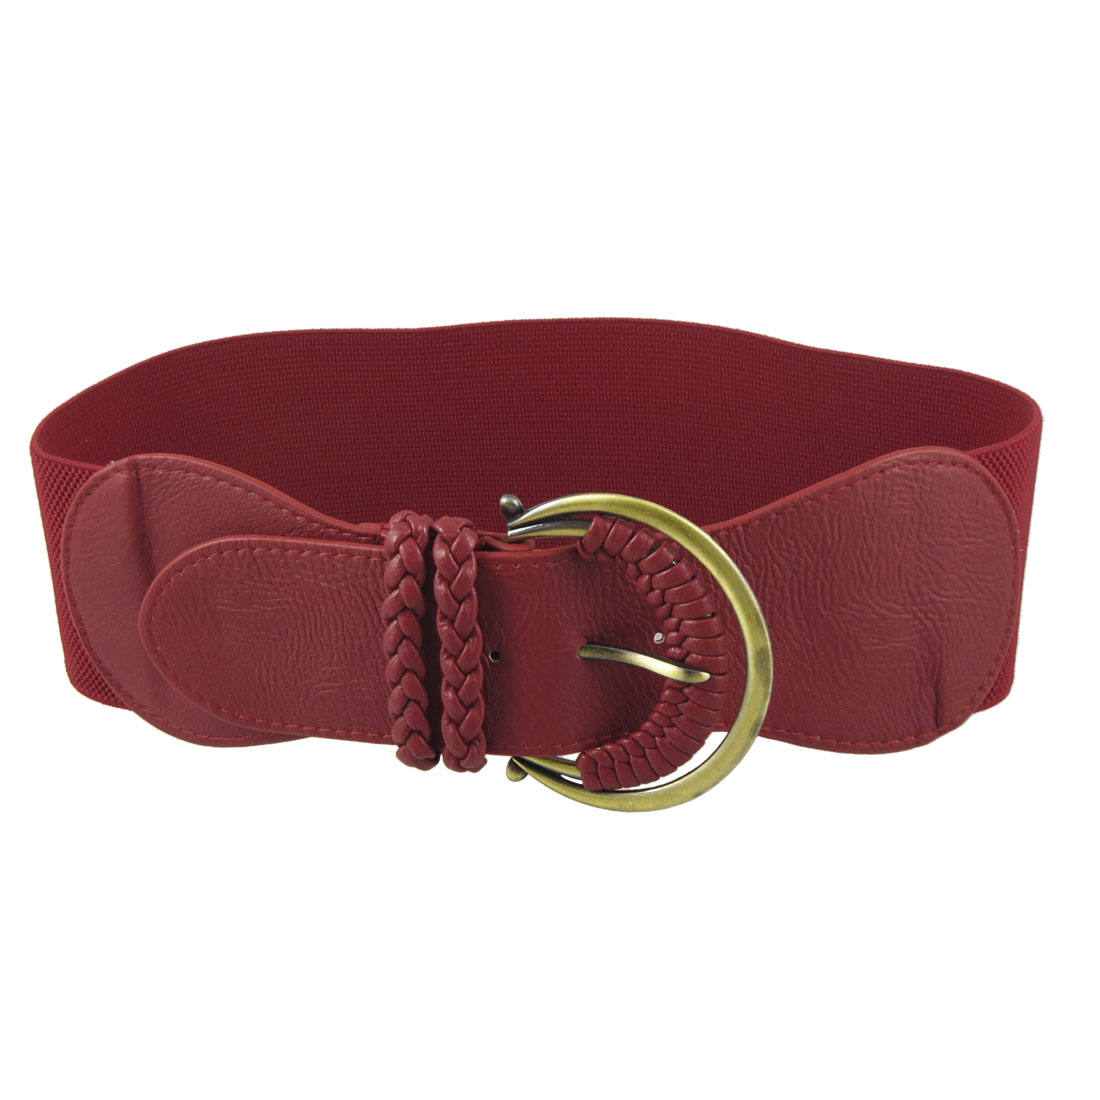 Lady Braid Faux Leather Metal Single Buckle Wide Red Elastic Cinch Waist Belt